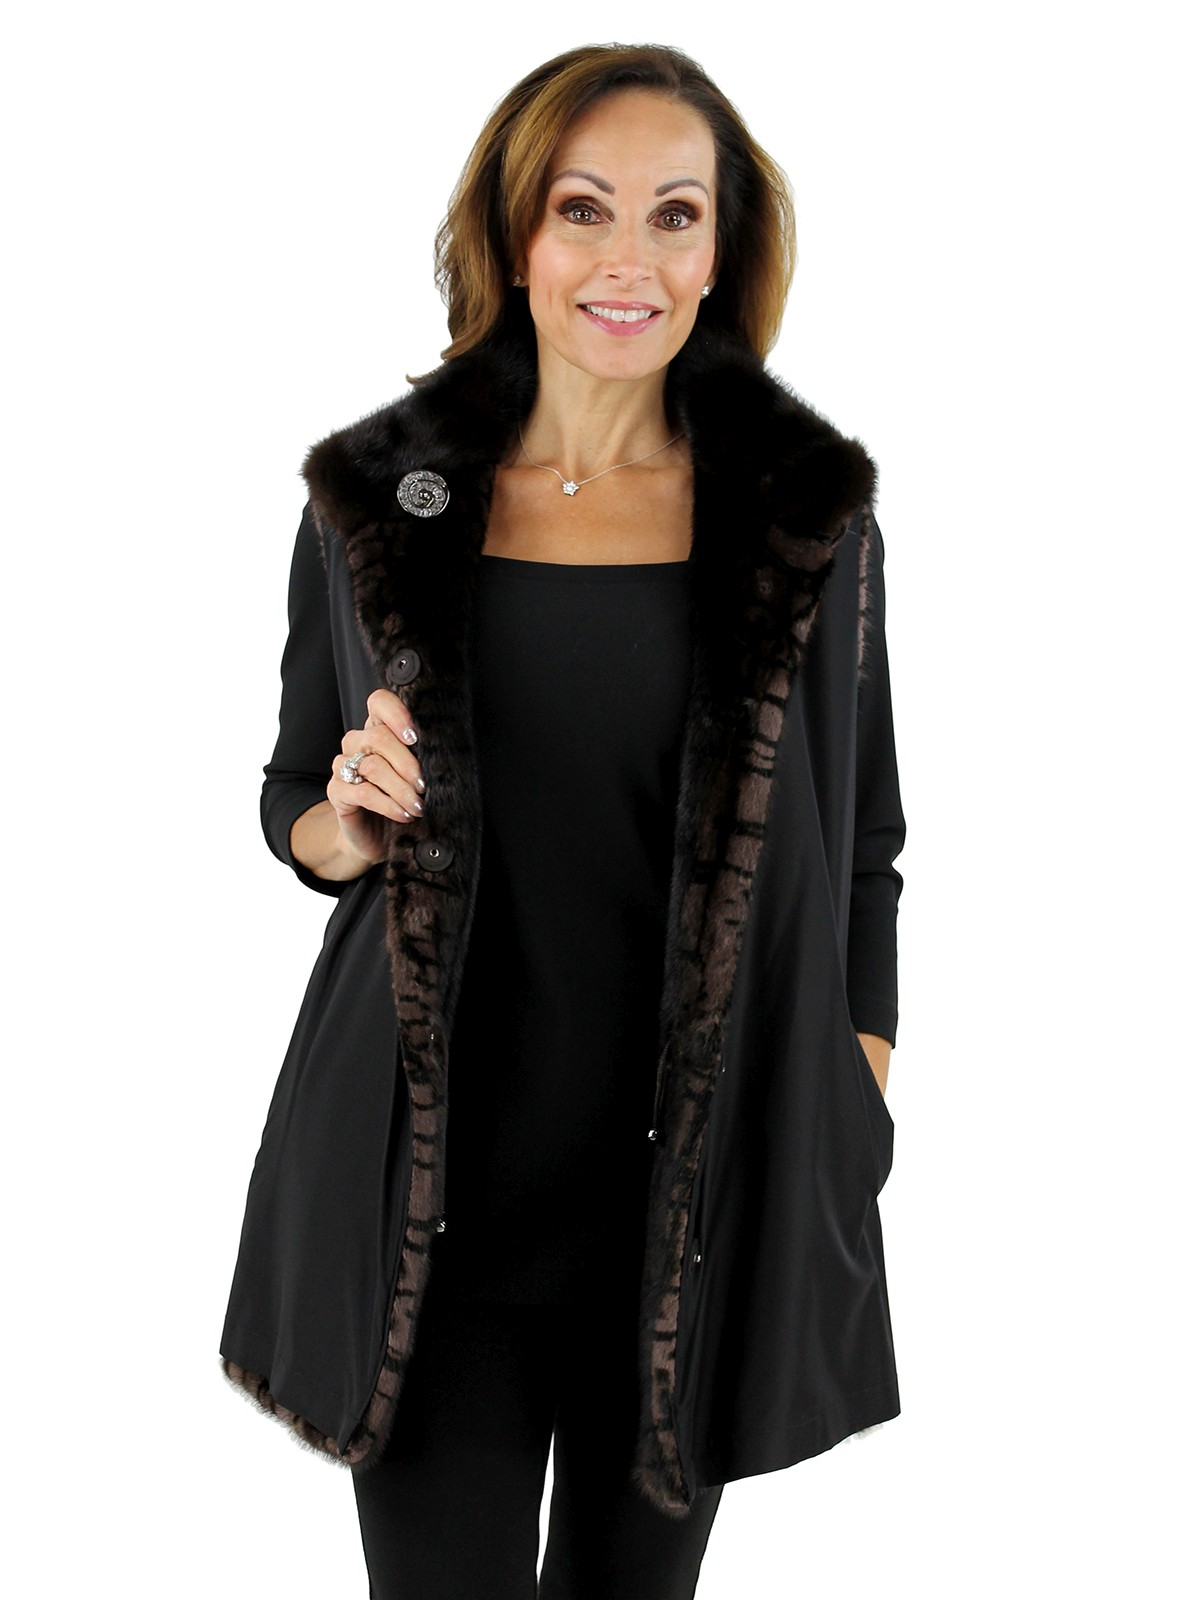 Gorski Brown Print Mink Vest Reverse to Black Taffeta